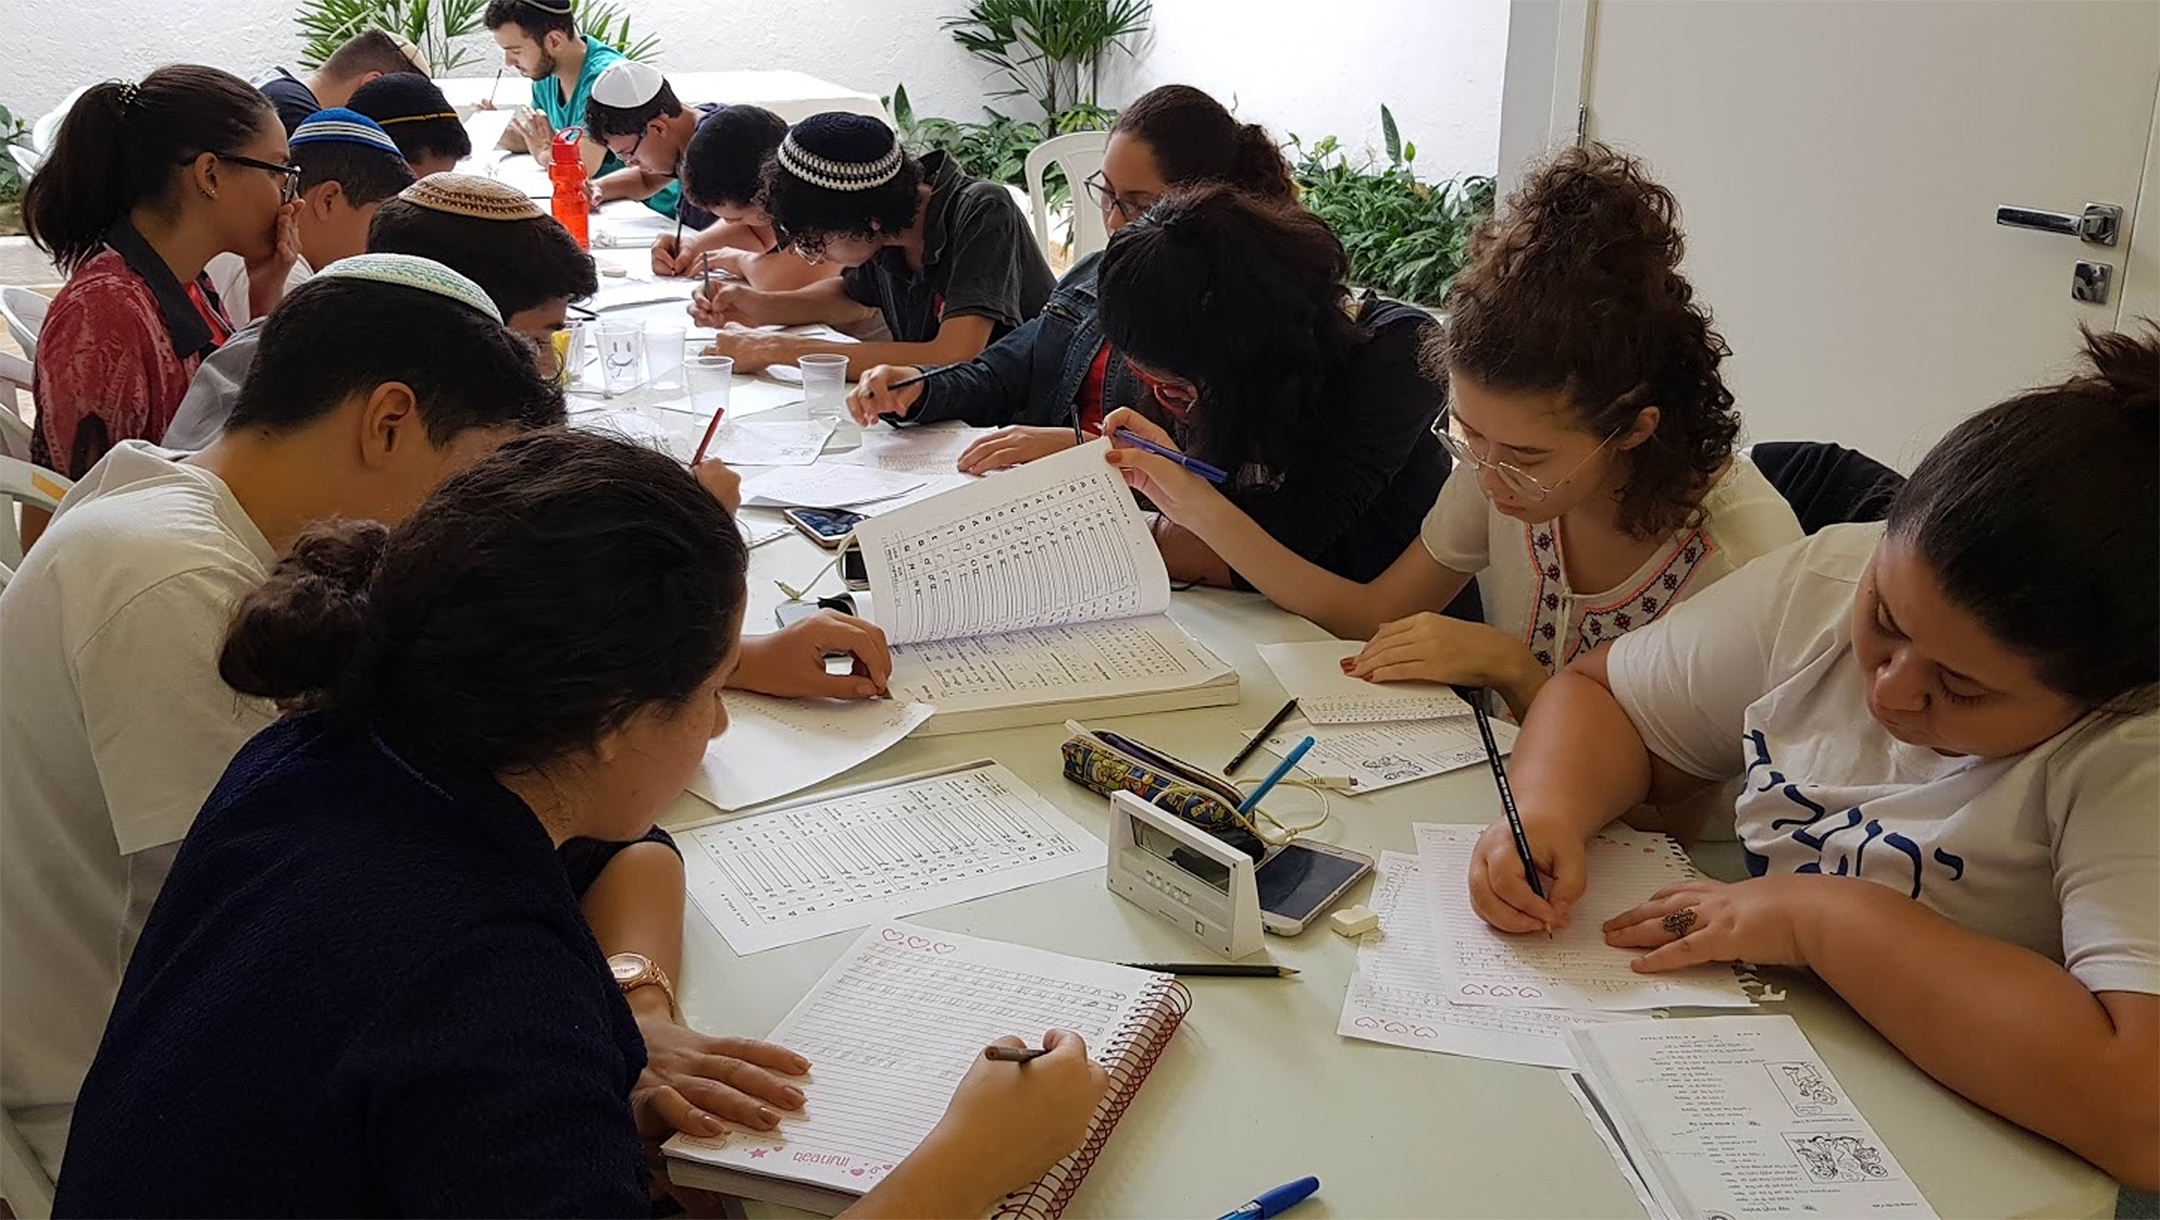 Participants of Brazil's Yeshiva Camp in hitting the books in Sao Paulo in 2018. Courtesy of Yeshiva Camp